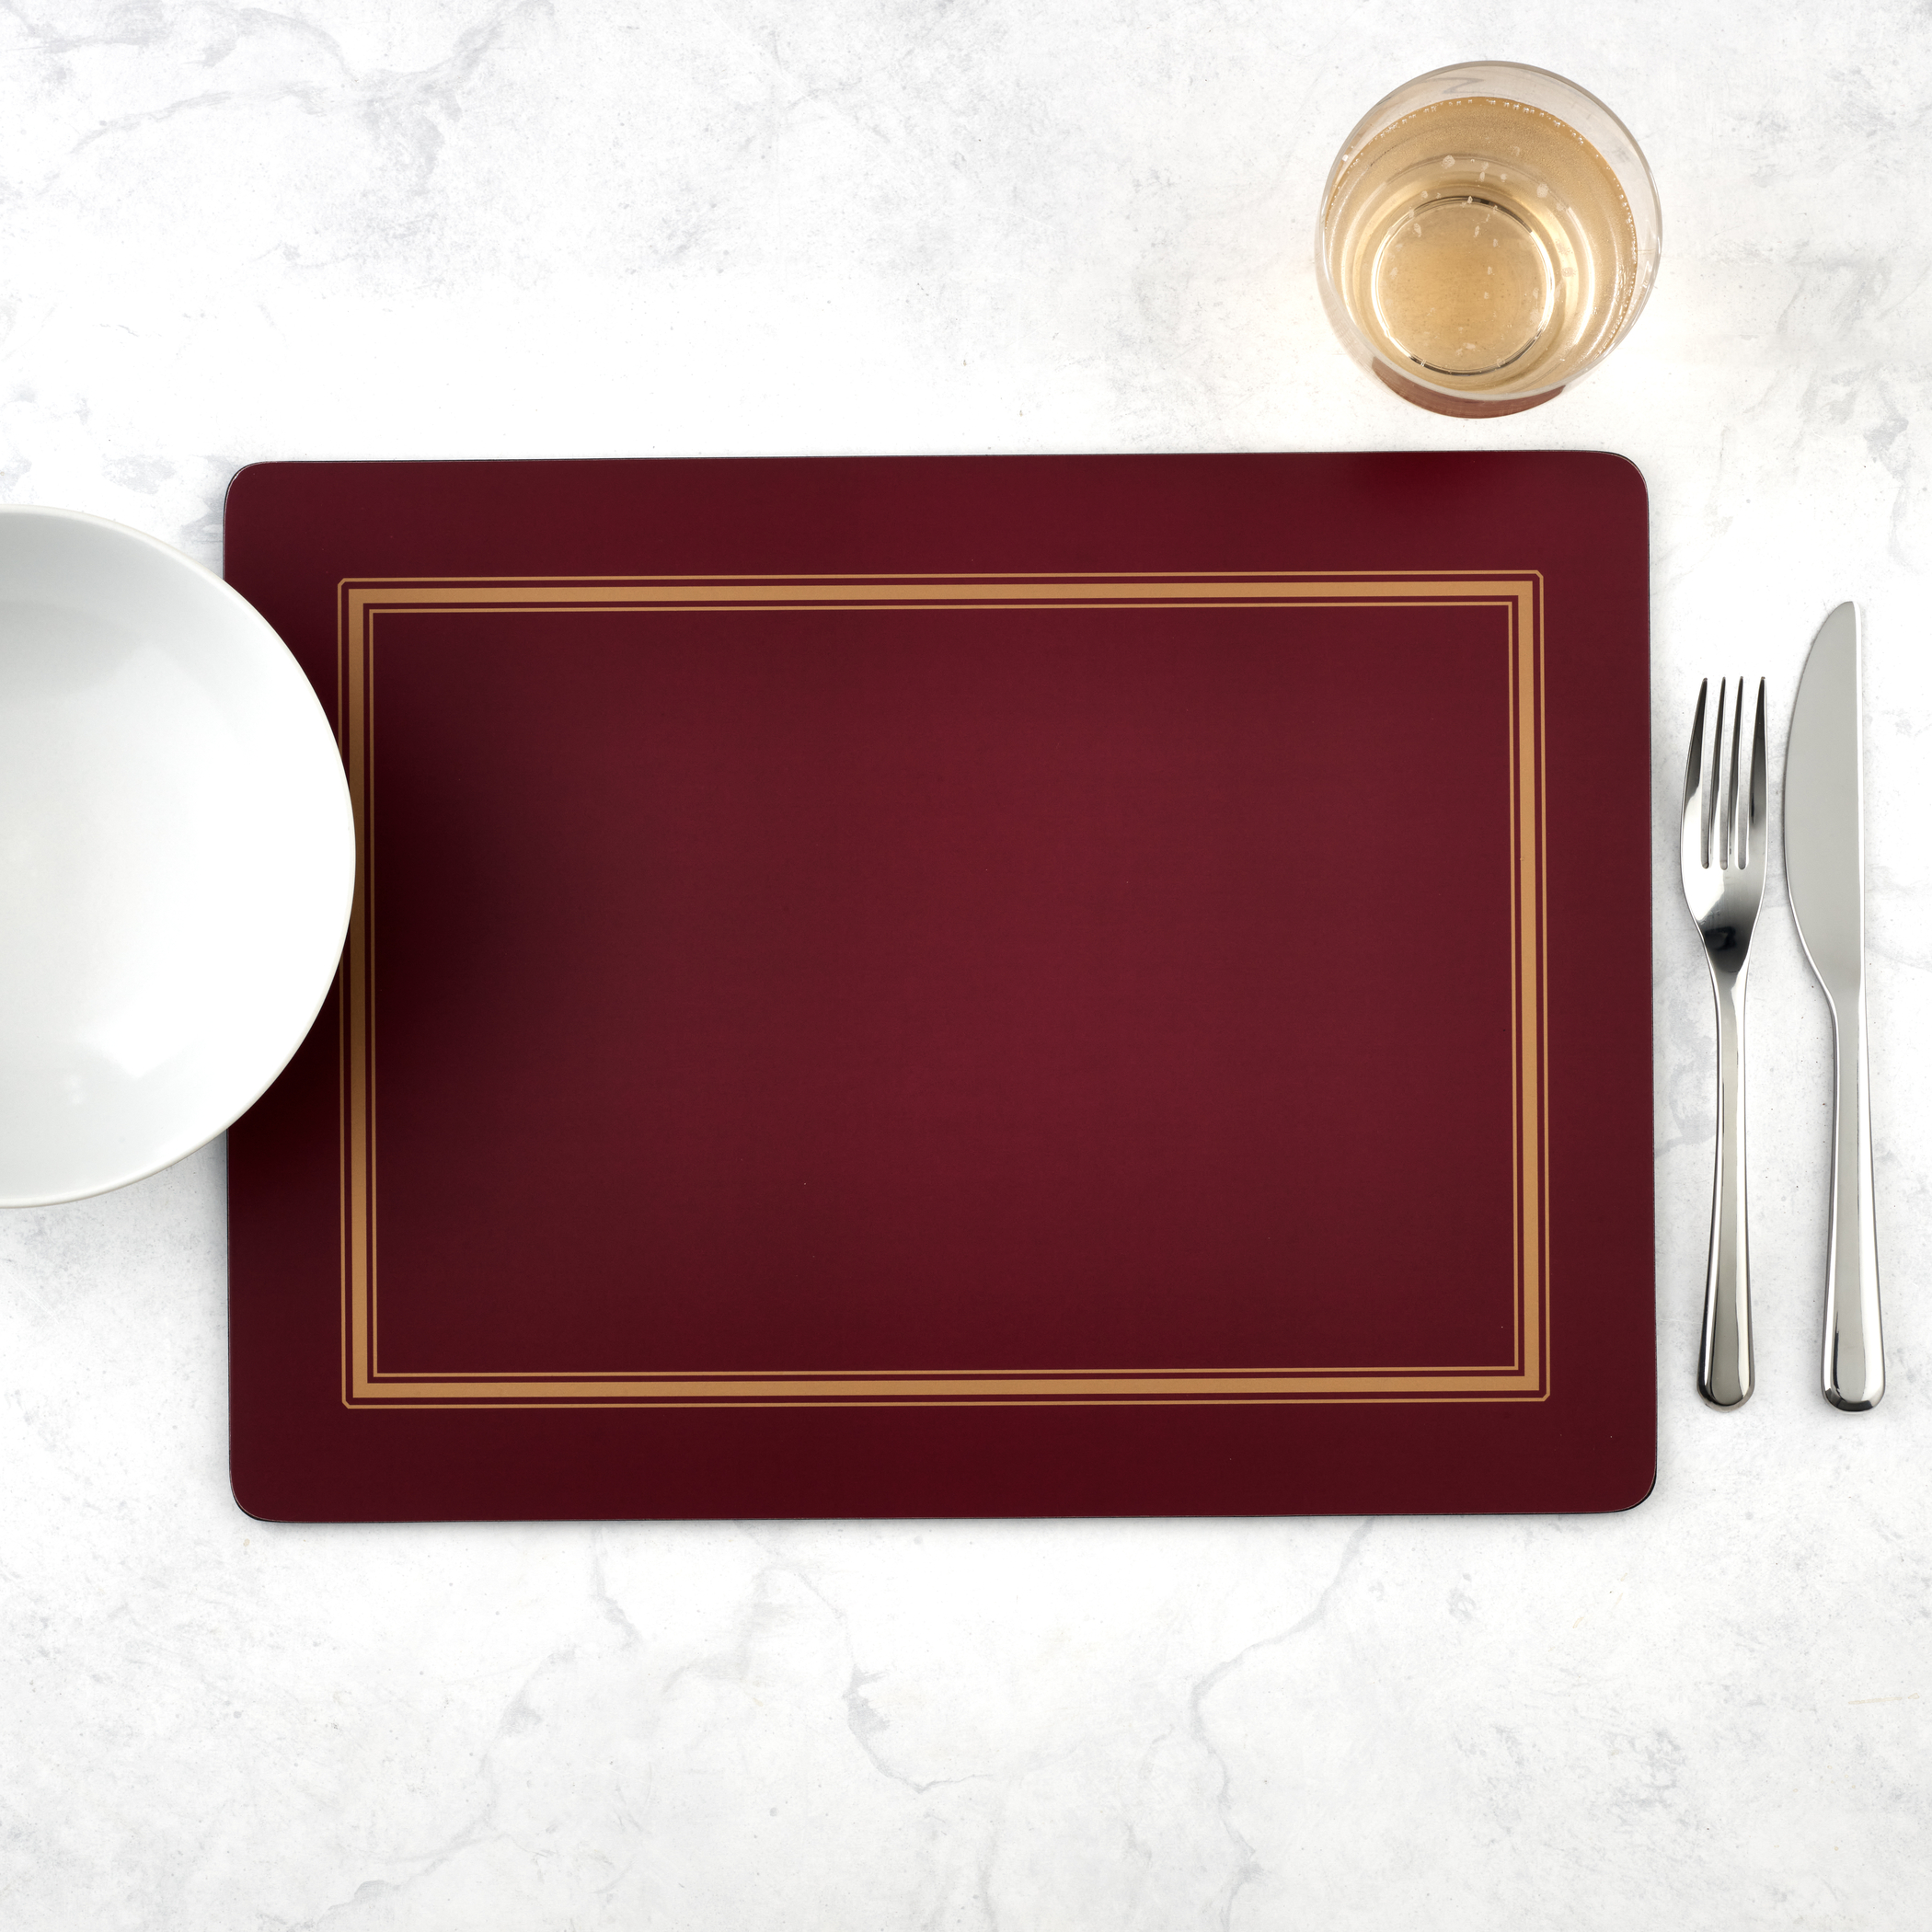 Pimpernel Classic Burgundy Placemats Set of 4 image number 5